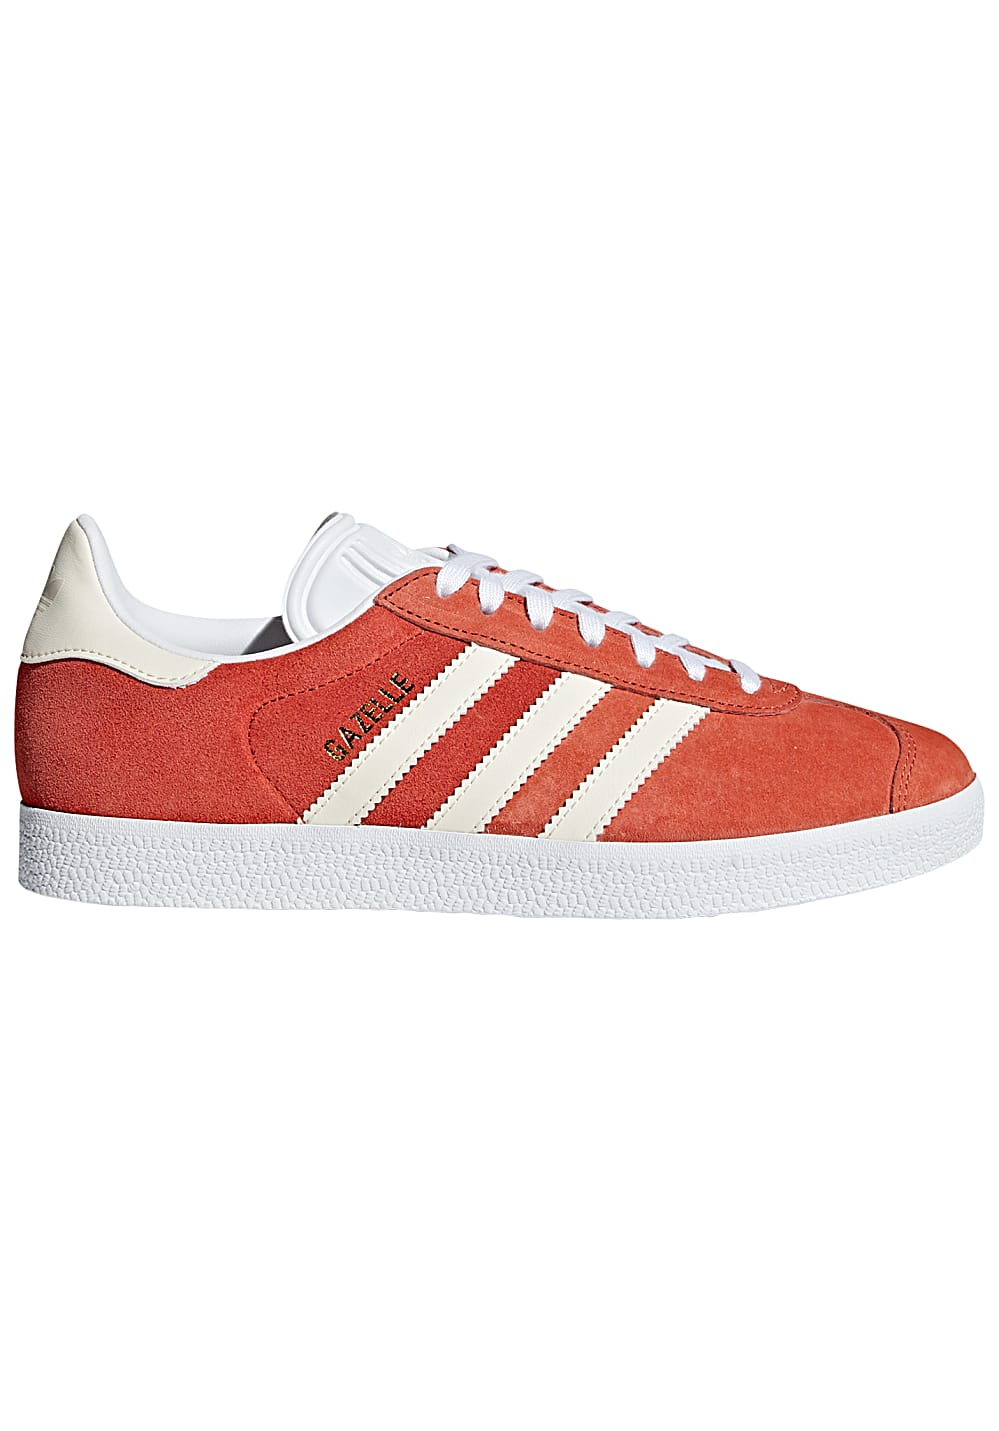 Femme Originals Orange Gazelle Für Adidas Sneaker LUqSpMGVz